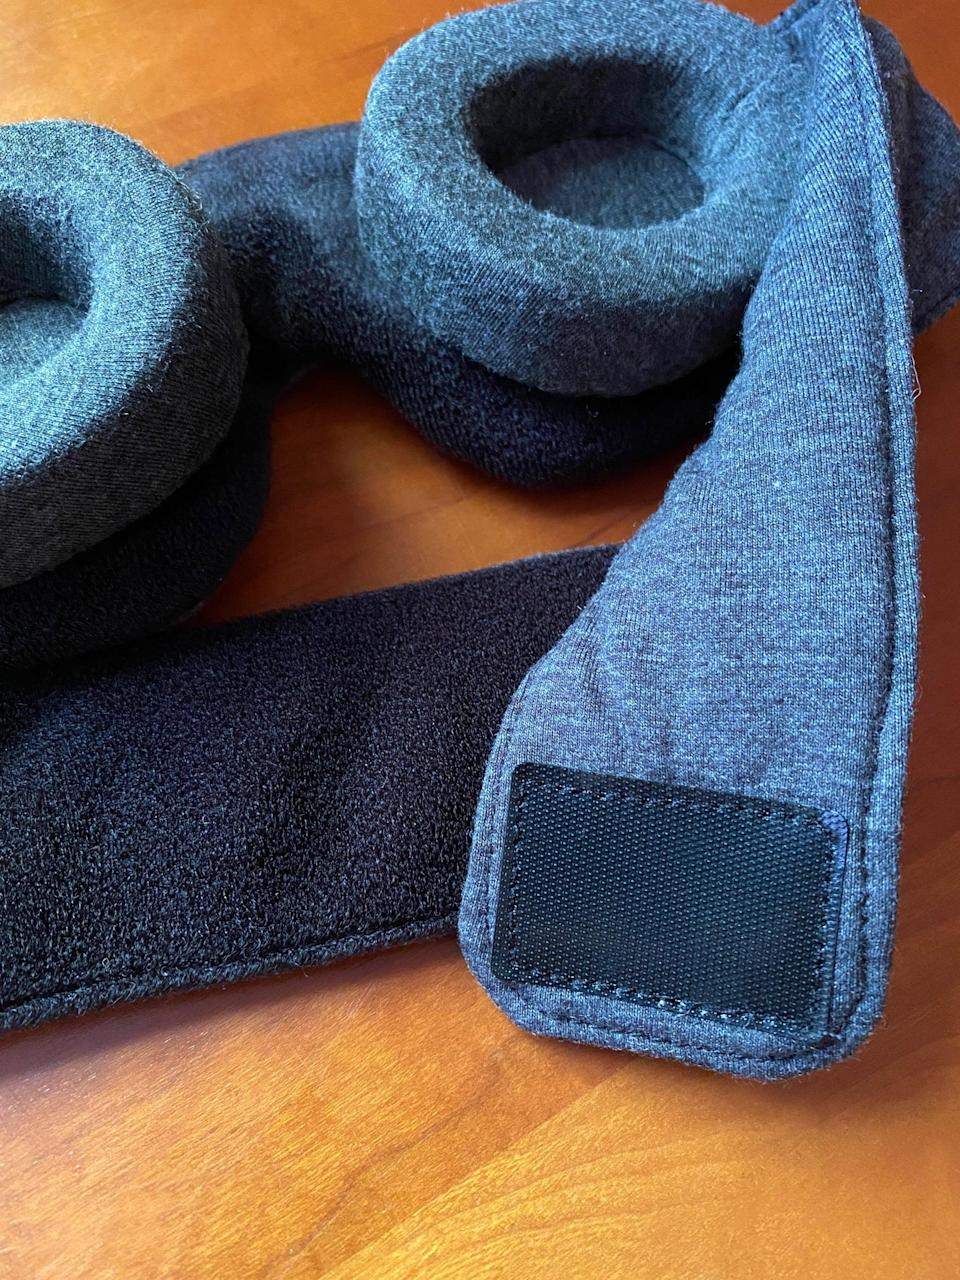 <p>The head strap is easily adjustable for the perfect snug fit with a thin hook-and-loop fastener. Once I secured the velcro around my head, it stayed put even when I turned over while sleeping.</p>